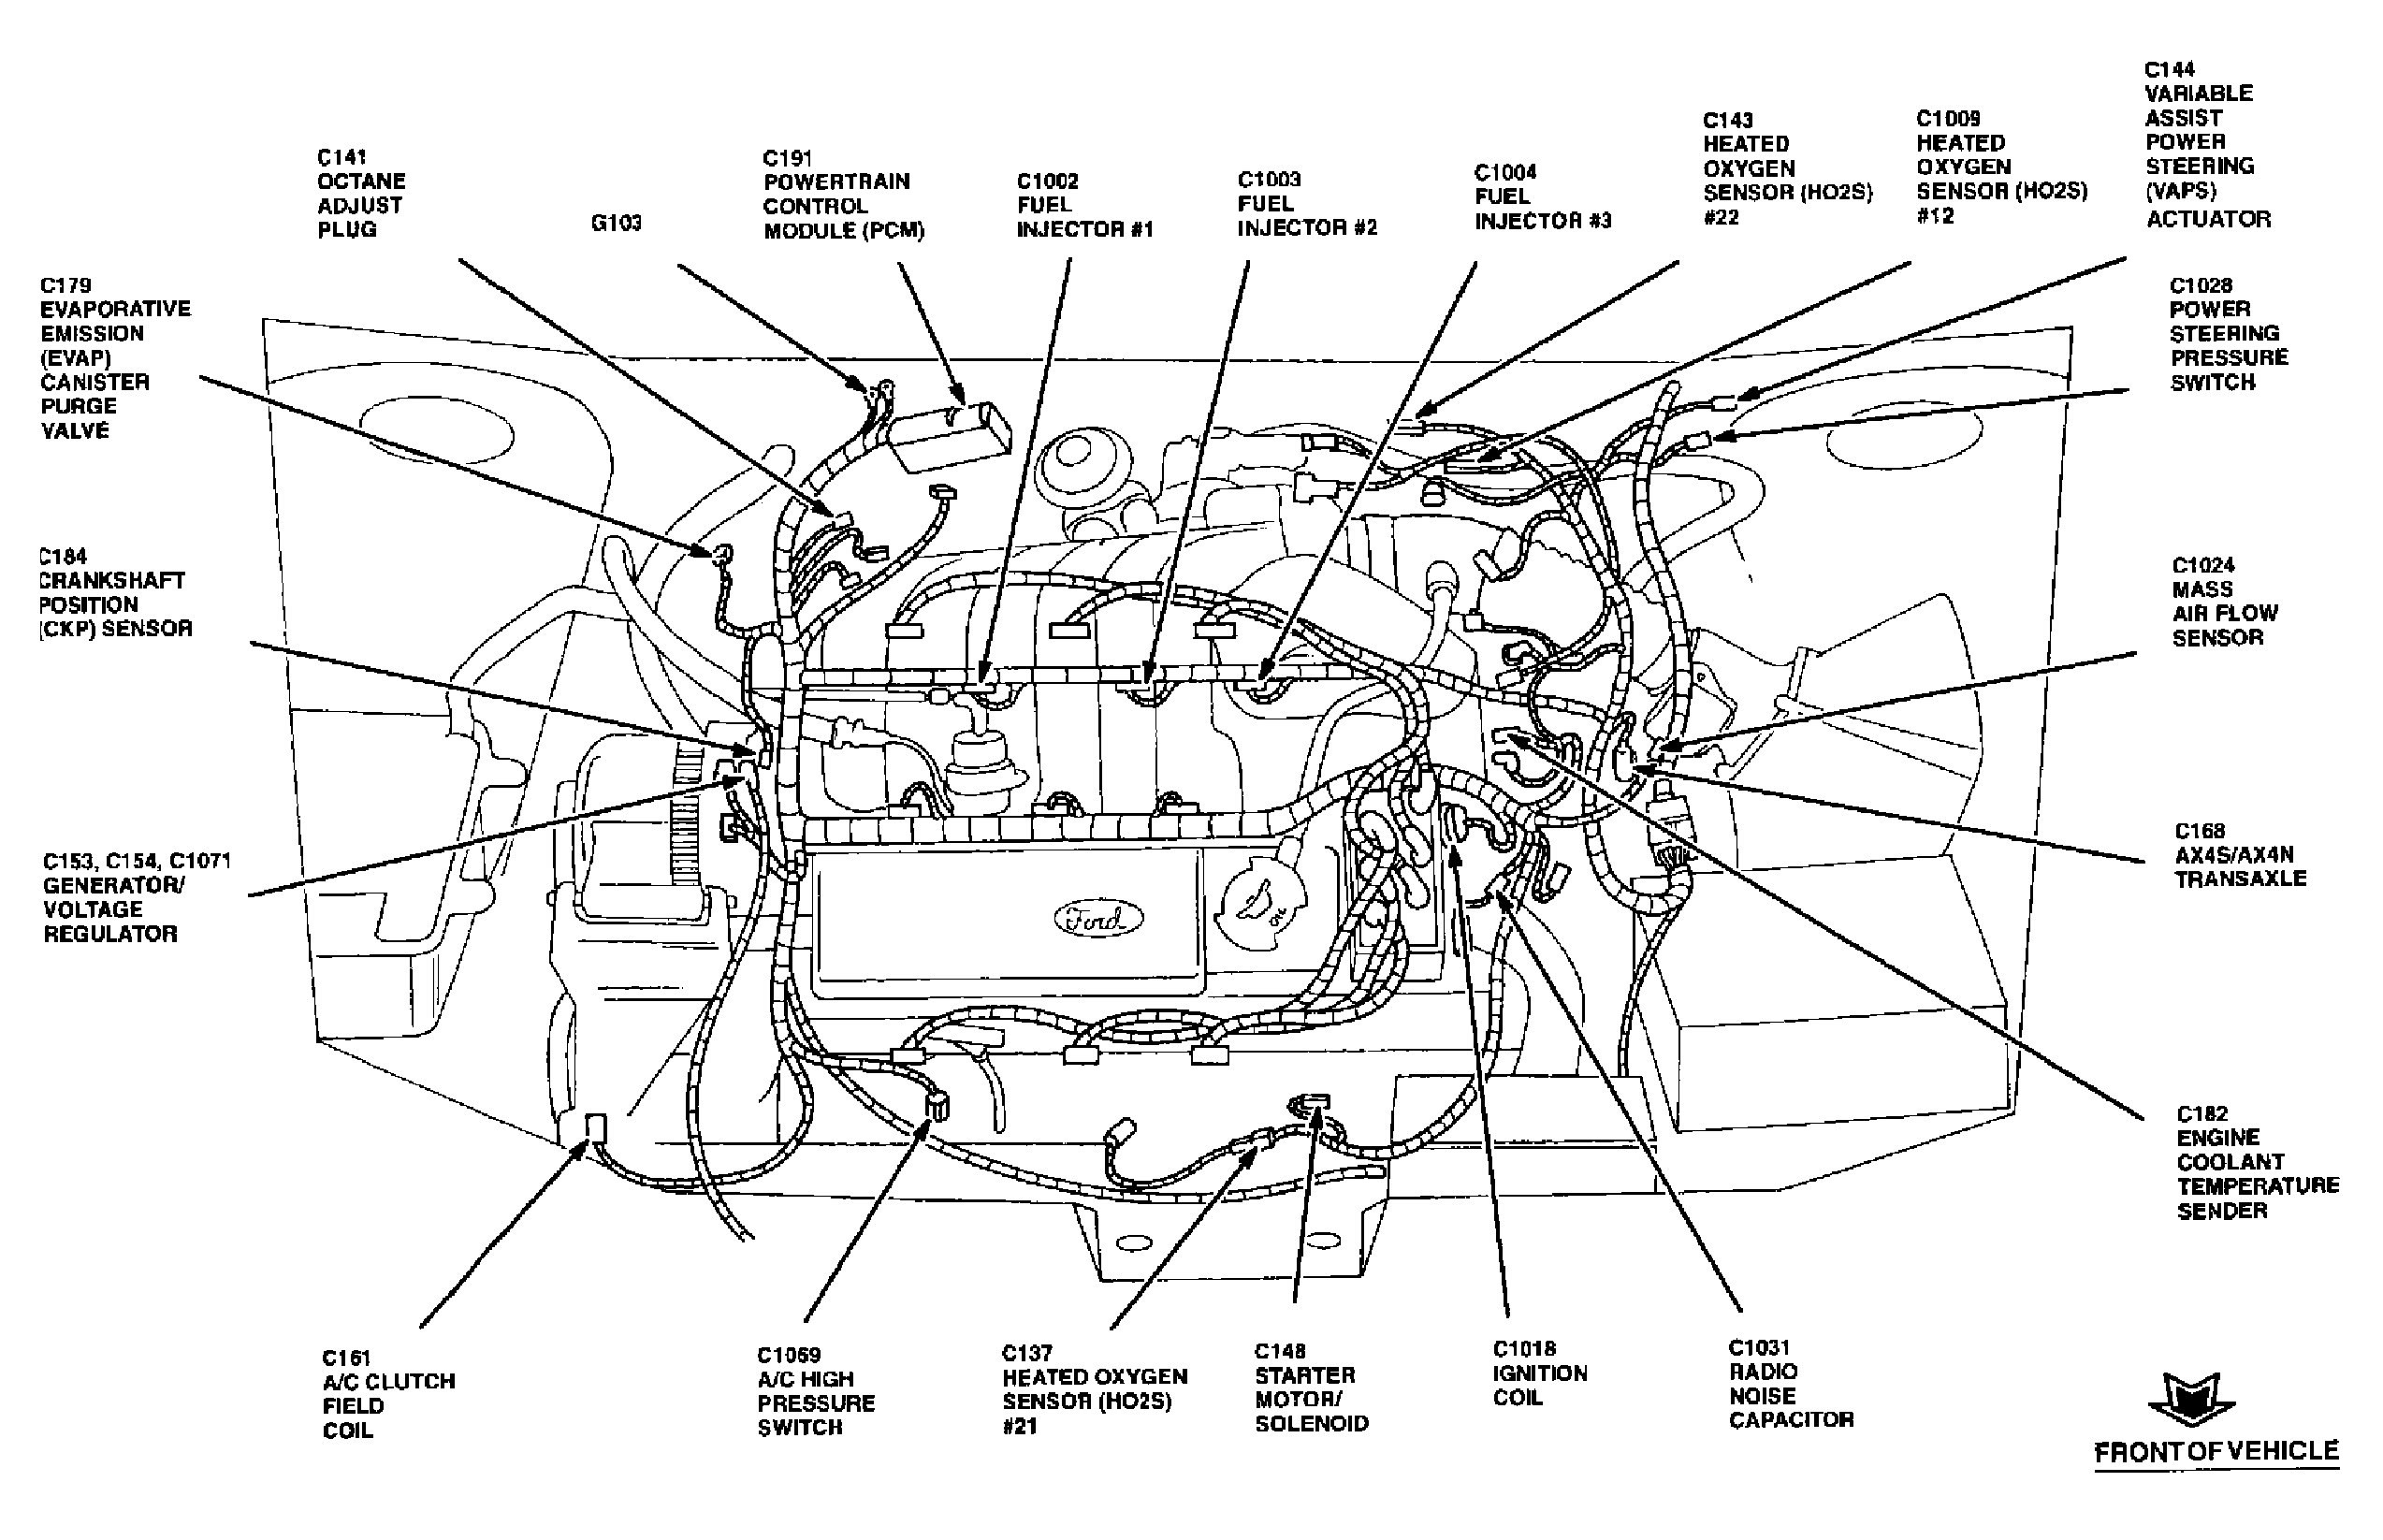 DIAGRAM] Ford Taurus V6 Vortec Engine Diagram FULL Version HD Quality Engine  Diagram - 1SNOWPLOWWIRING1.LALIBRAIRIEDELOUVIERS.FR1snowplowwiring1.lalibrairiedelouviers.fr